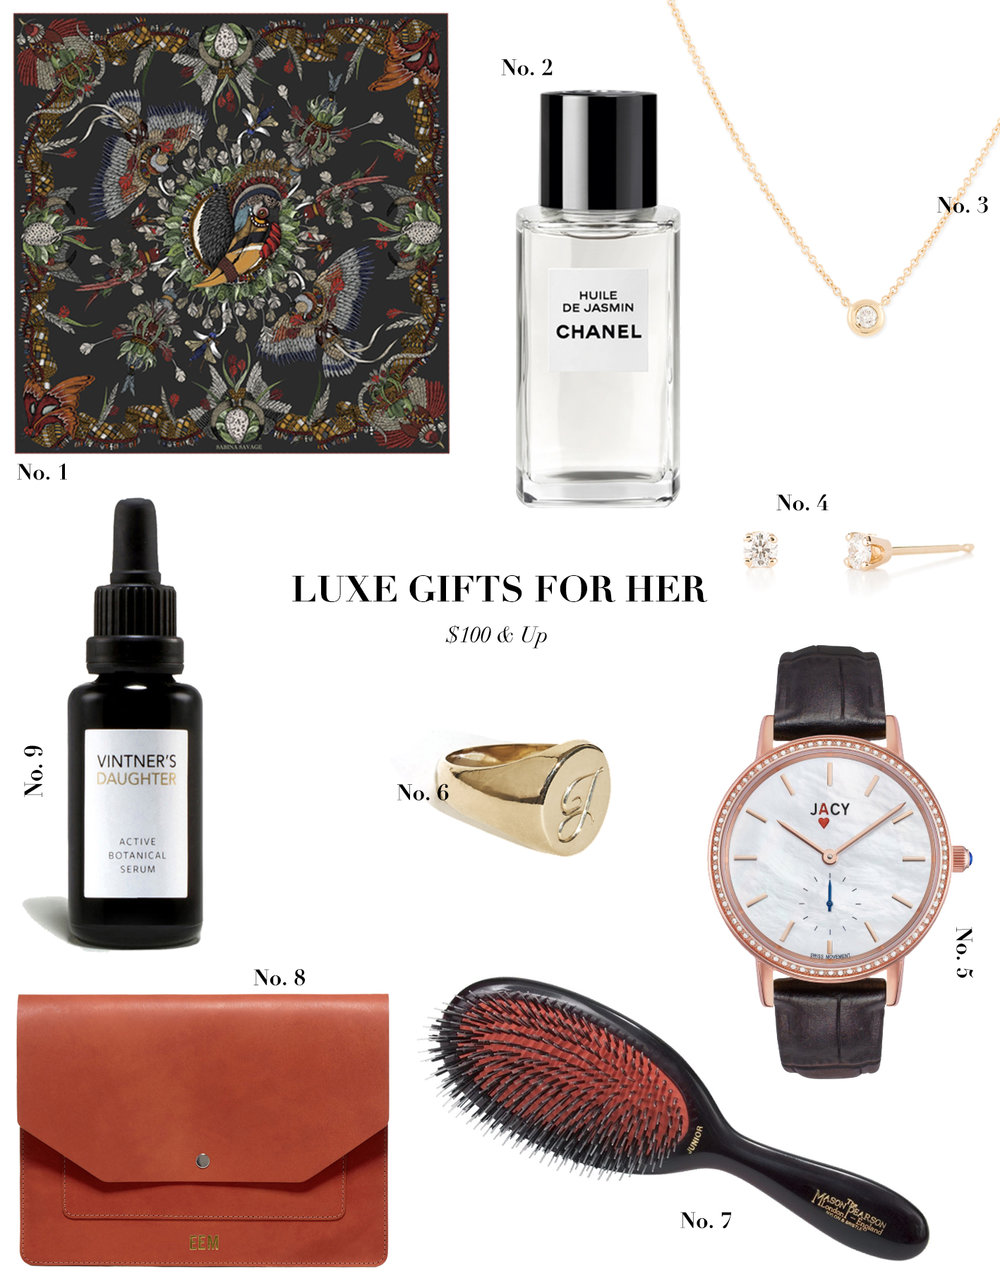 luxury_gift_guide_sabina_savage_silk_scarf_chanel_jess_hannah_signet_ring_jacy_watch_chanel_jasmine_oil_mejuri_mason_pearson_.jpg